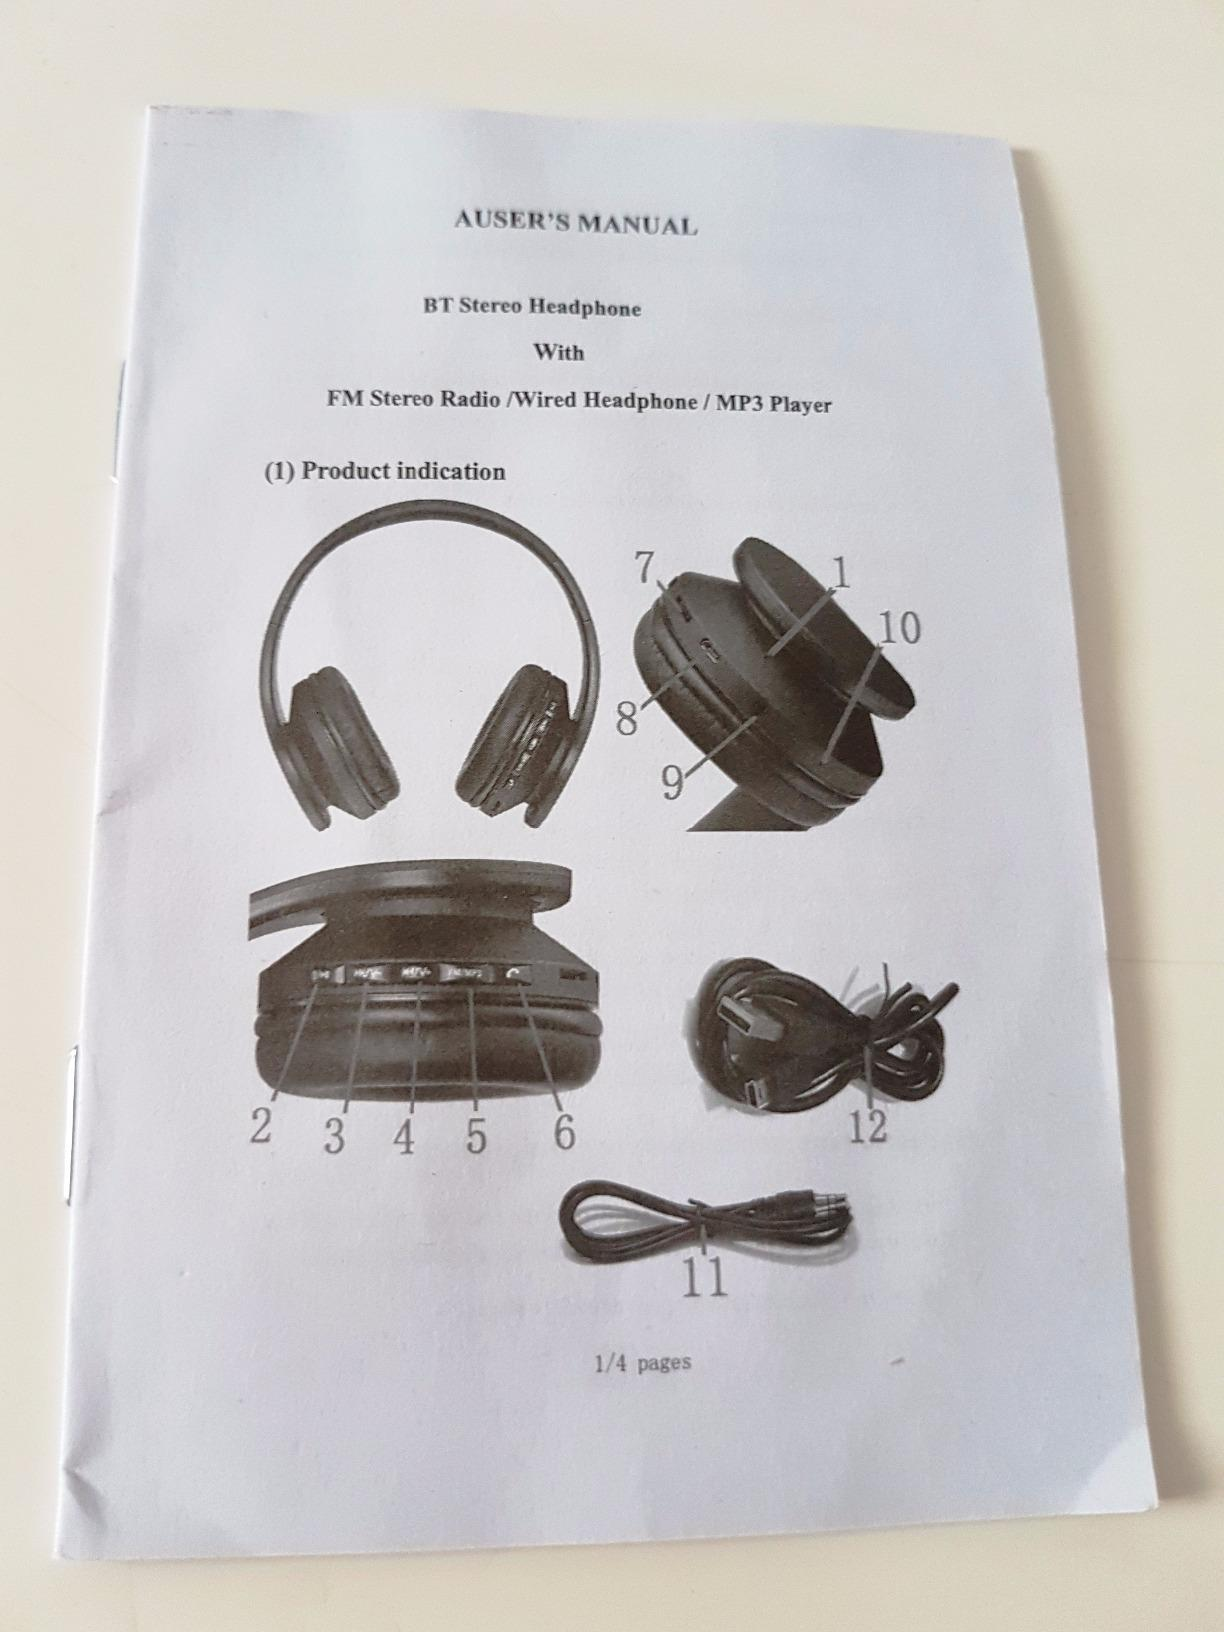 Andoer Lh 811 Foldable 4 In 1 Wireless Bt Edr Headset With Mic Sales Speaker Bluetooth Vivo V9 Ori Is This Helpful 0